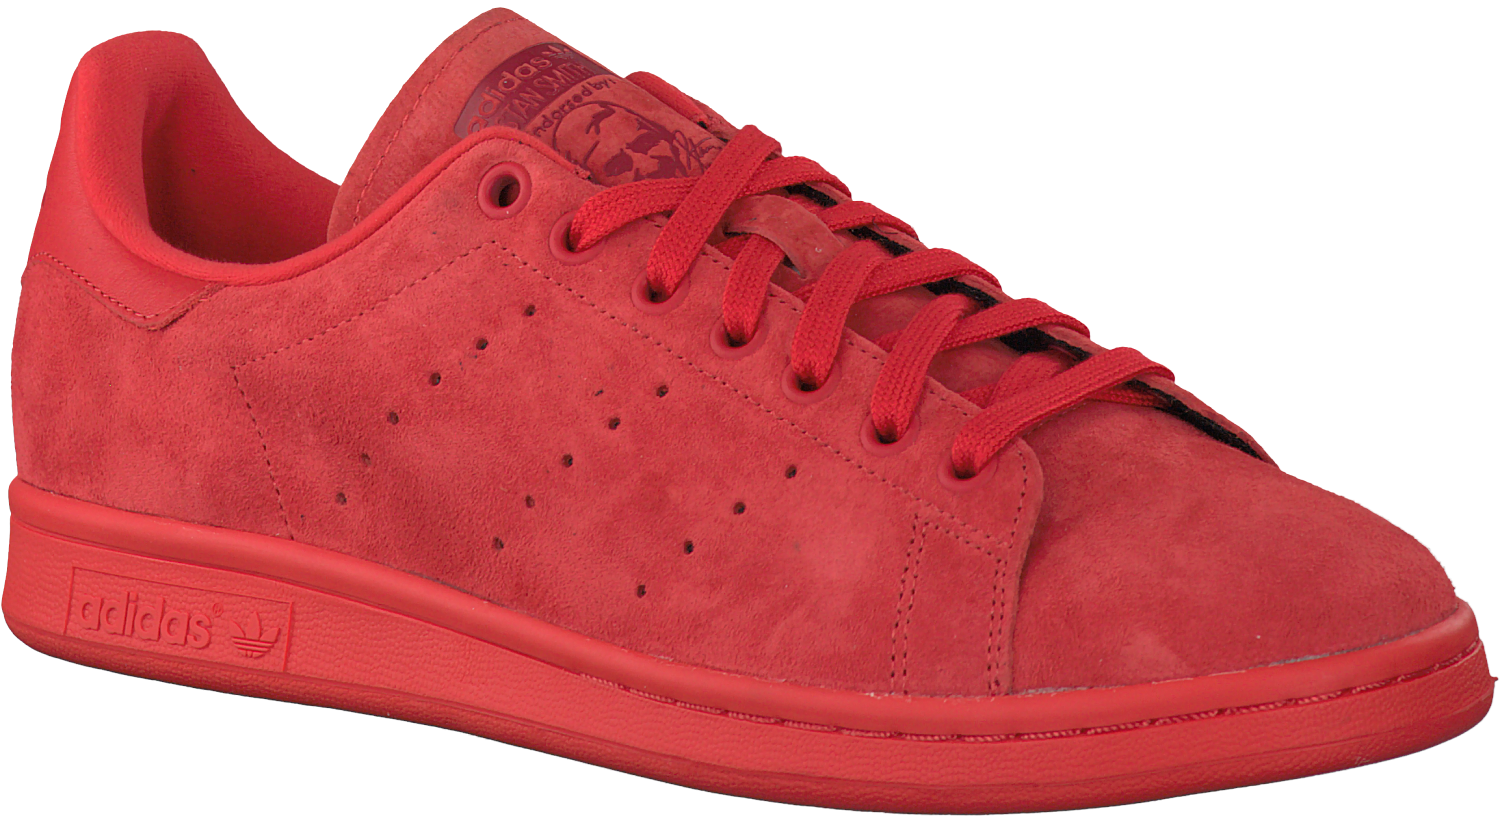 f05a72607b6 Rode ADIDAS Sneakers STAN SMITH HEREN. ADIDAS. -75%. Previous